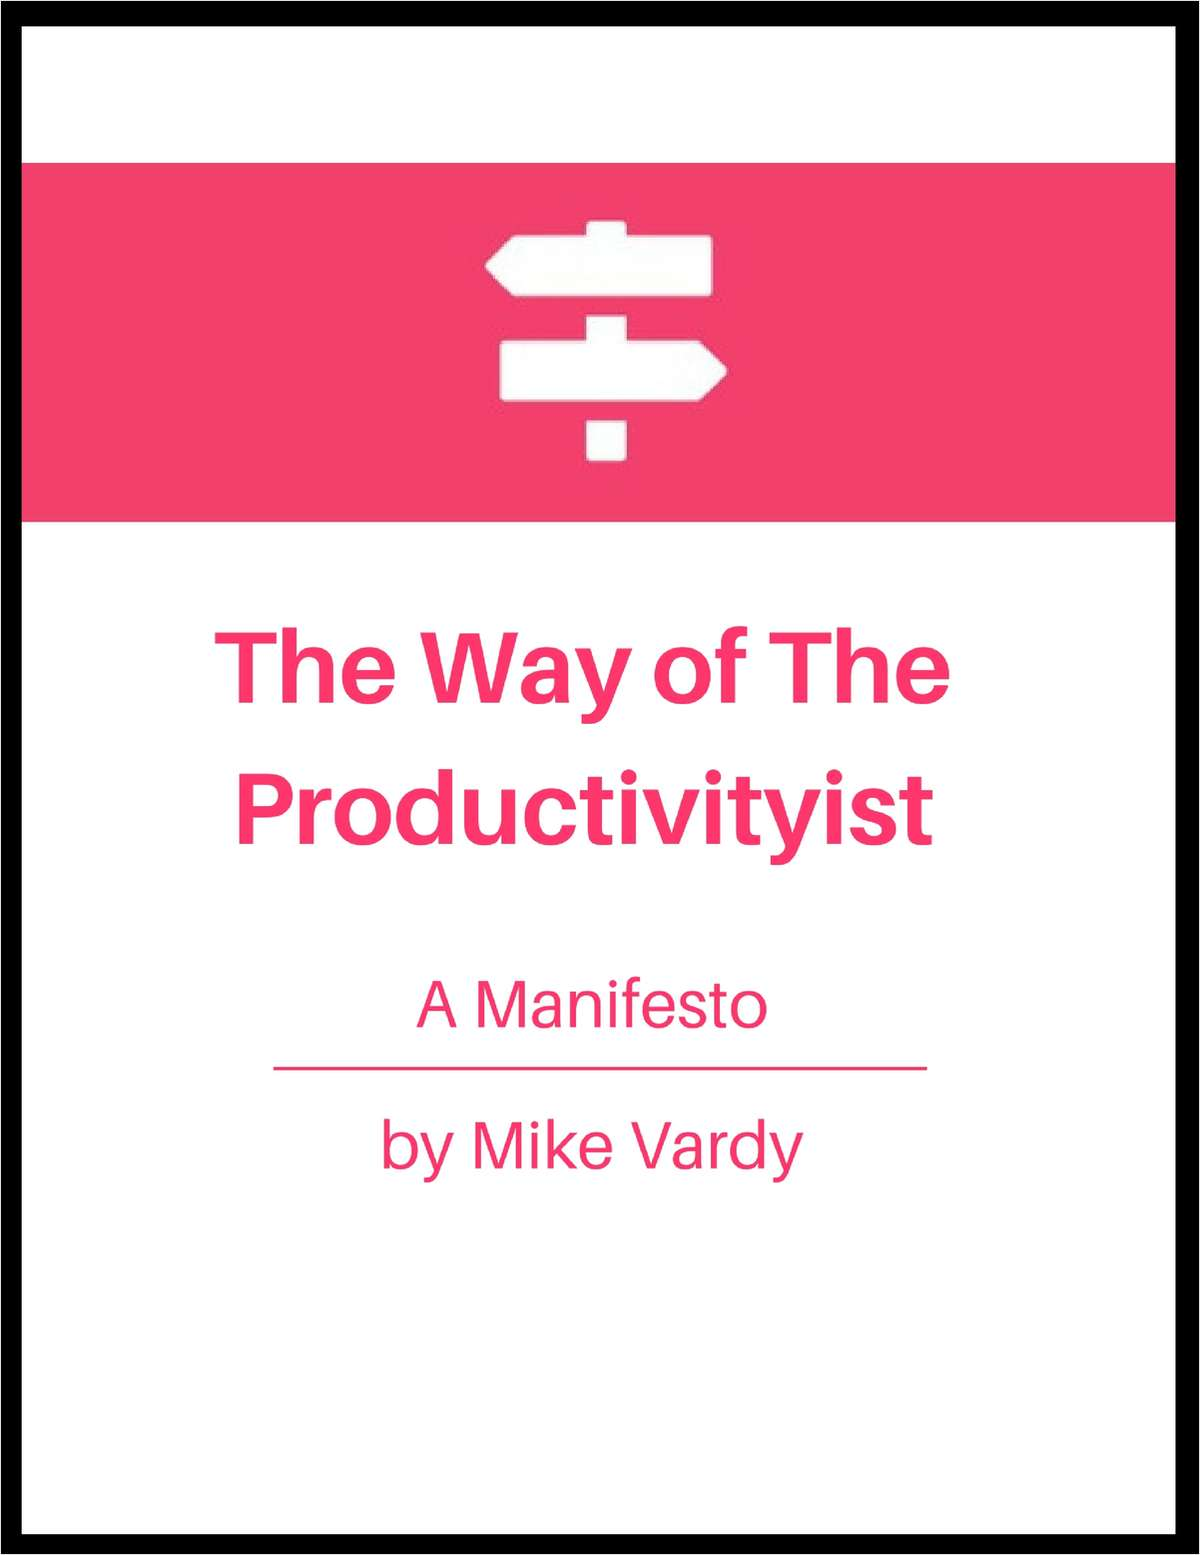 The Way of The Productivityist